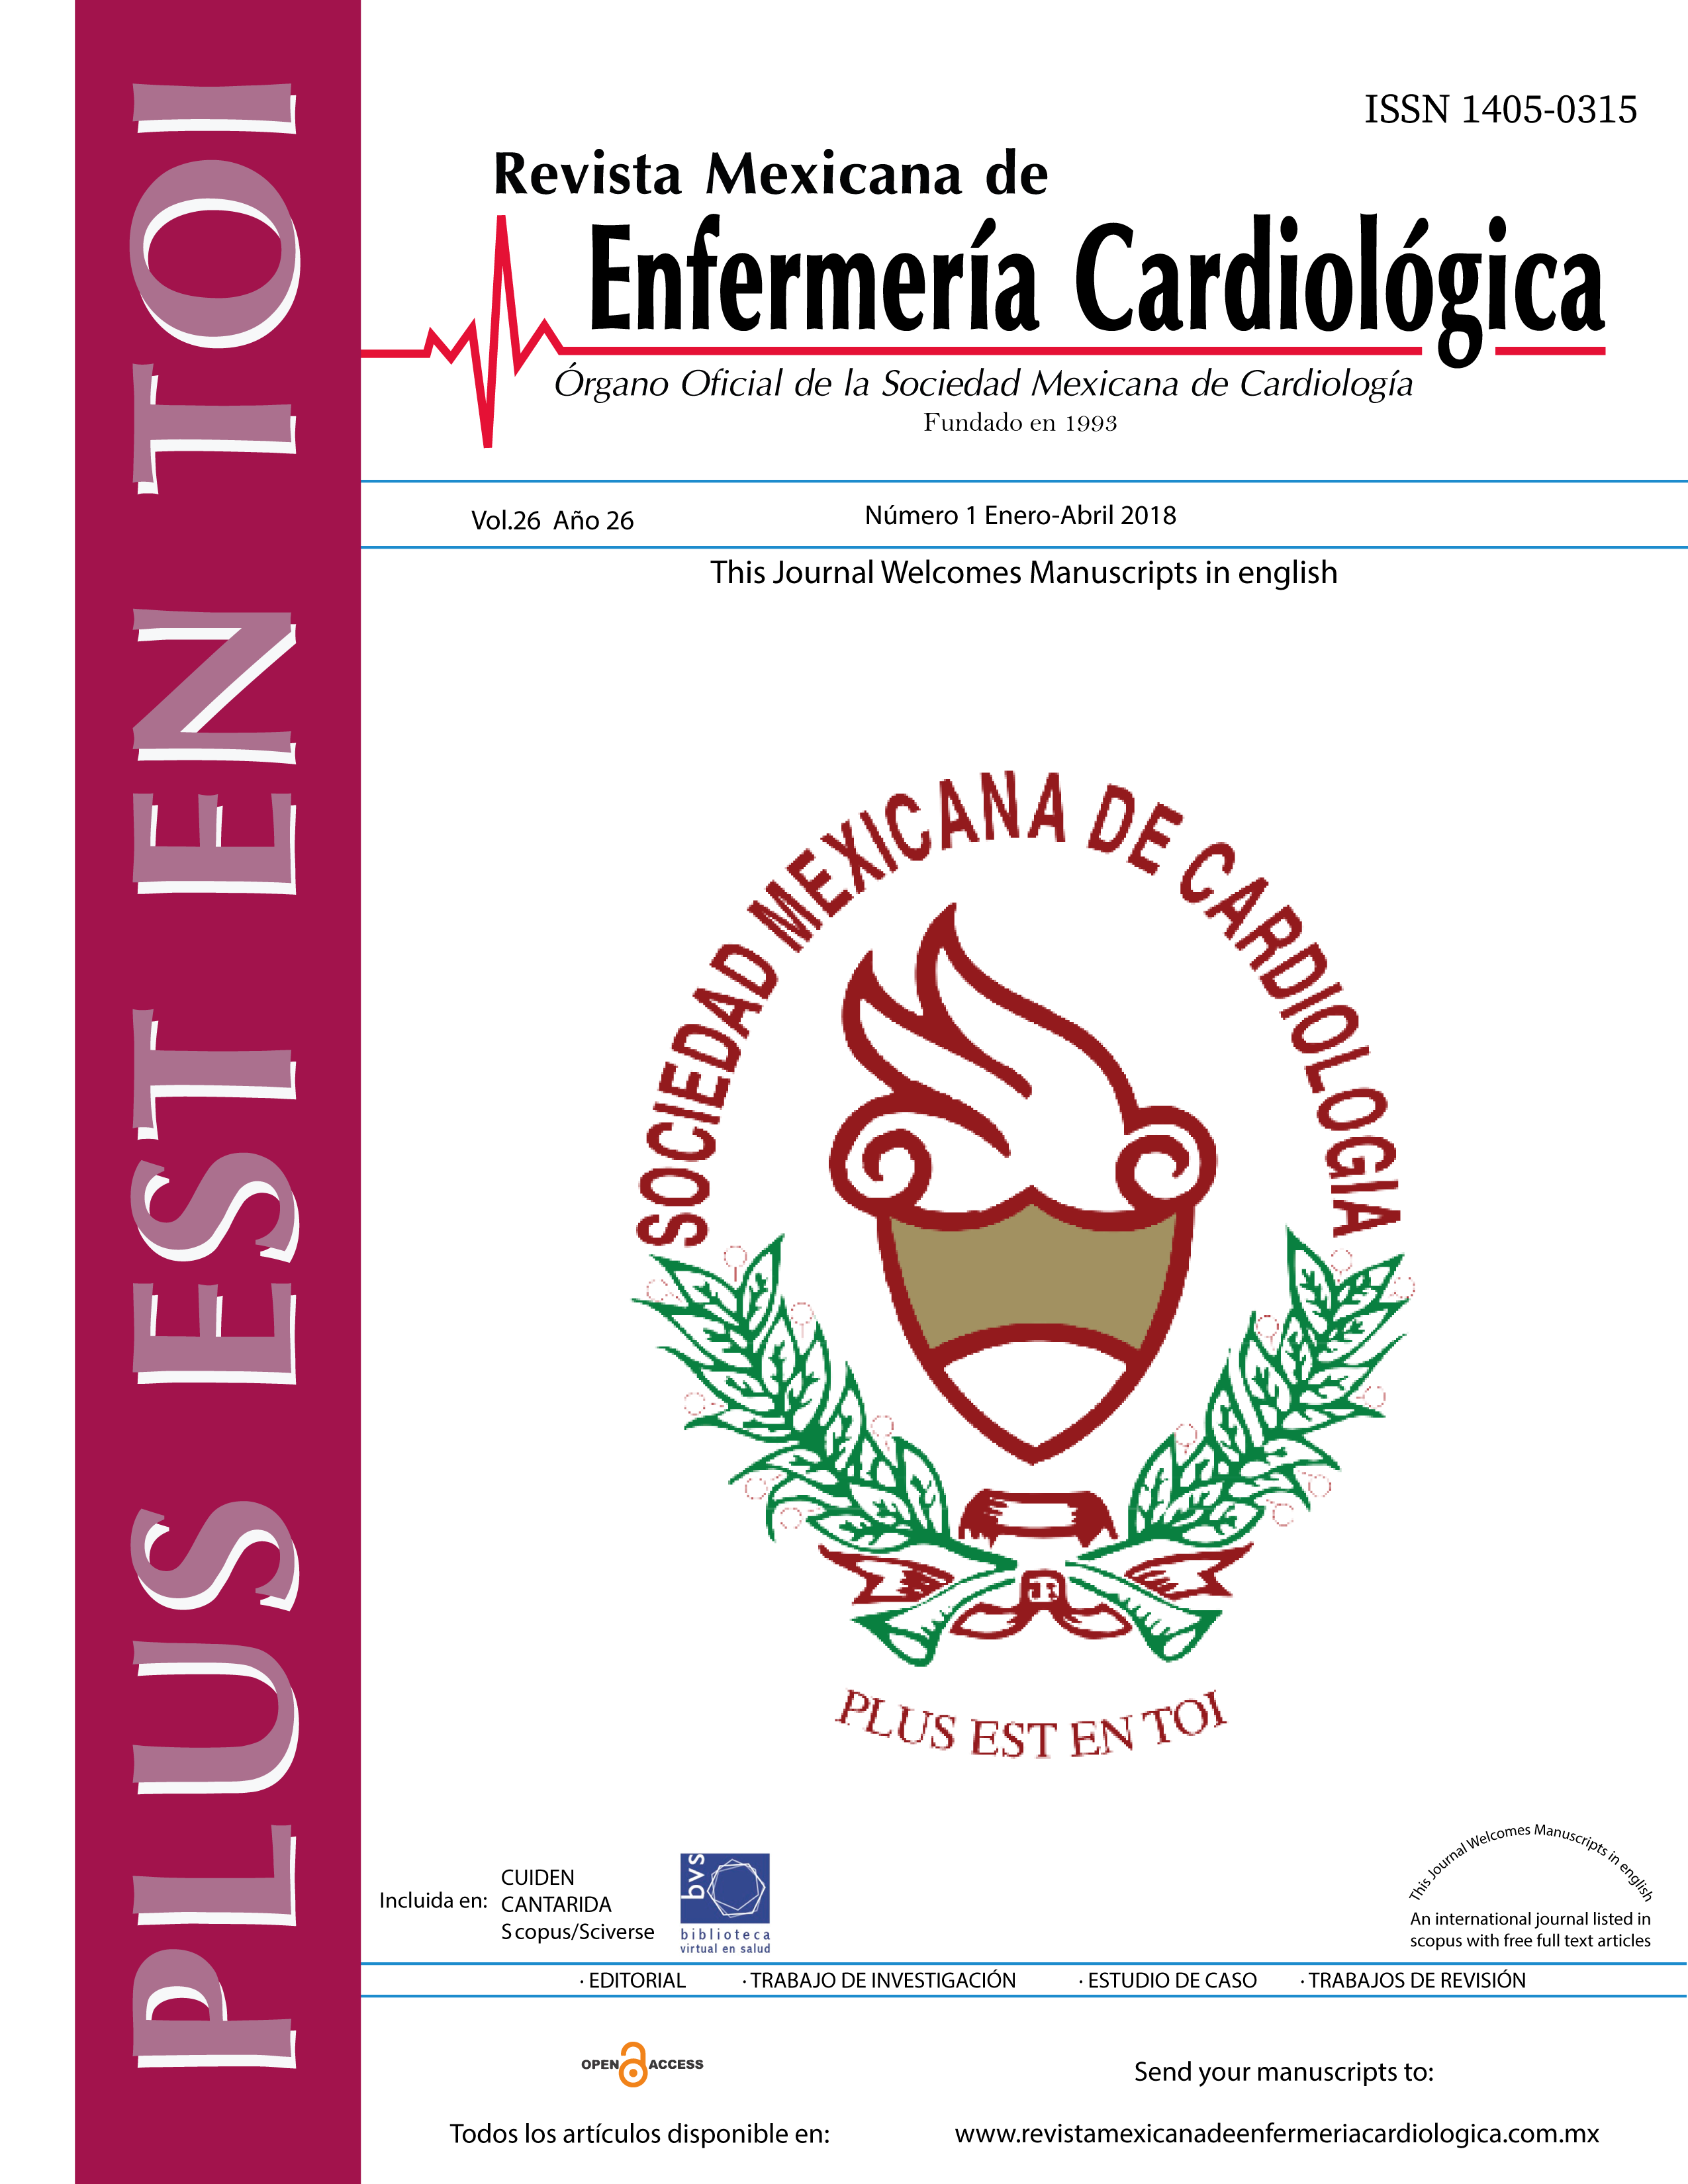 Rev Mex Enferm Cardiol 2018;26(1)1-32